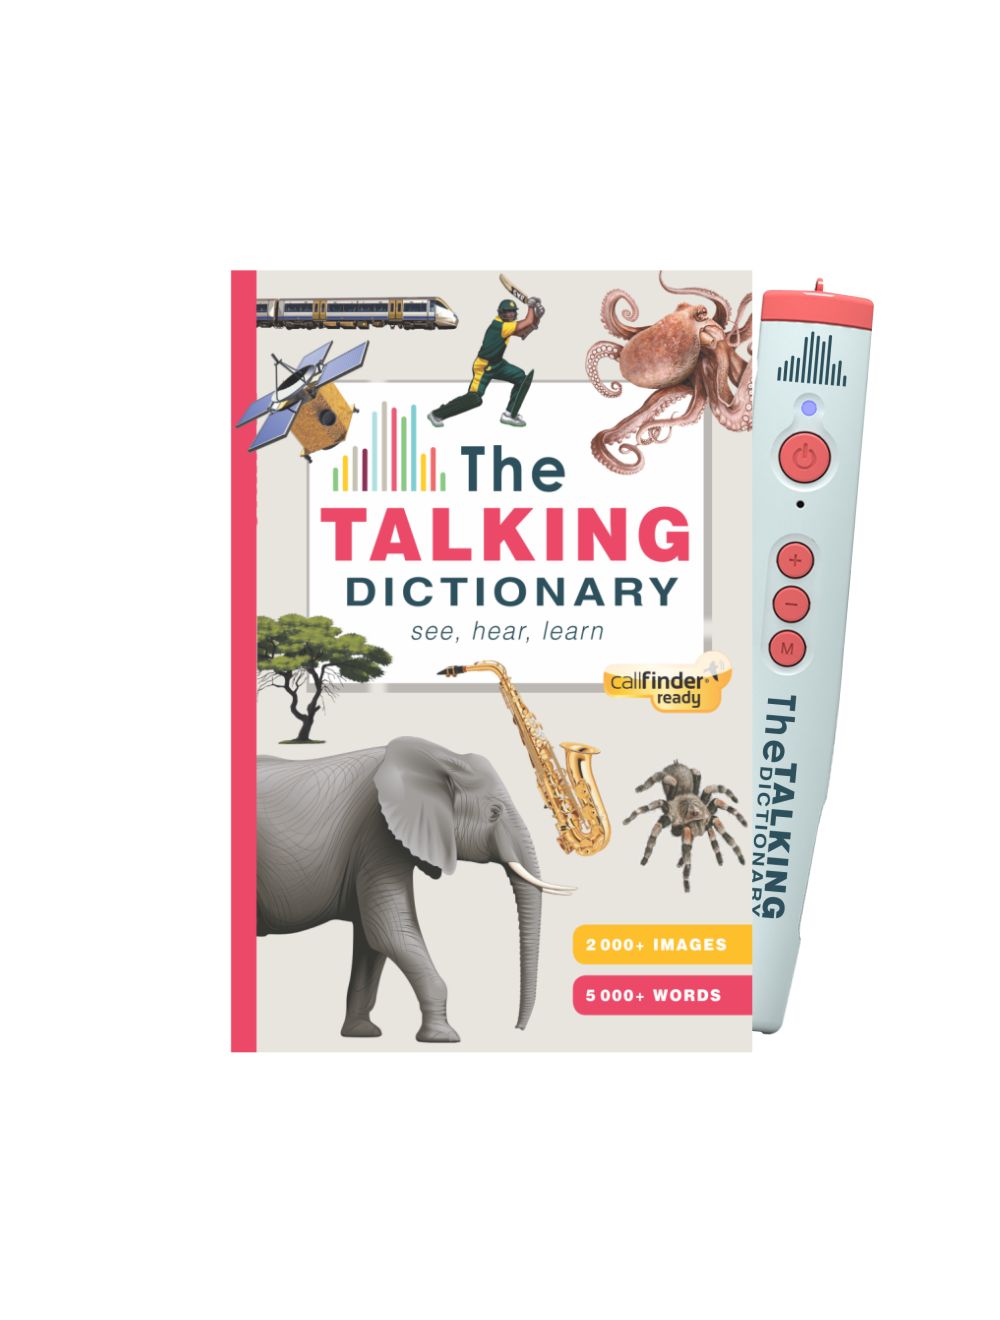 The Talking Dictionary with Callfinder Briza Publications